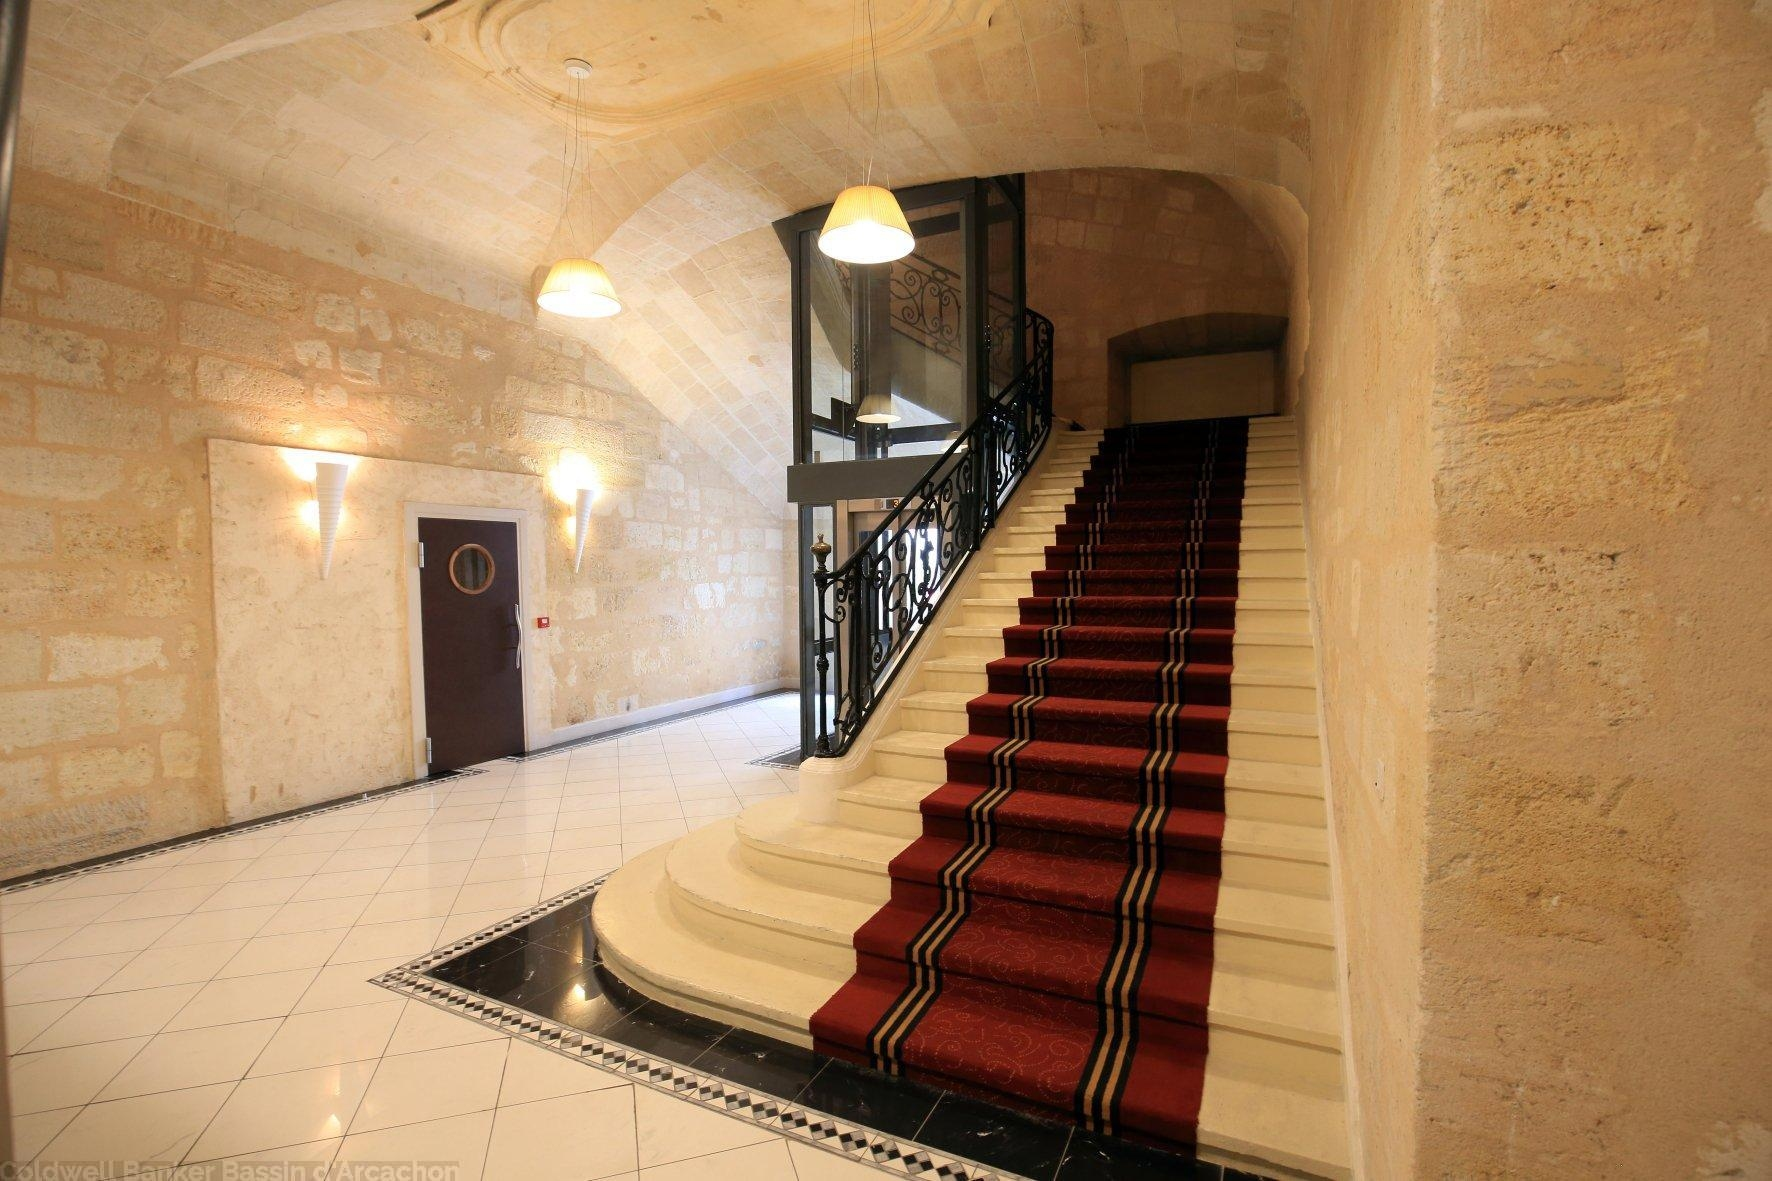 Vente appartement de prestige bordeaux triangle d 39 or for Appartement bordeaux triangle d or